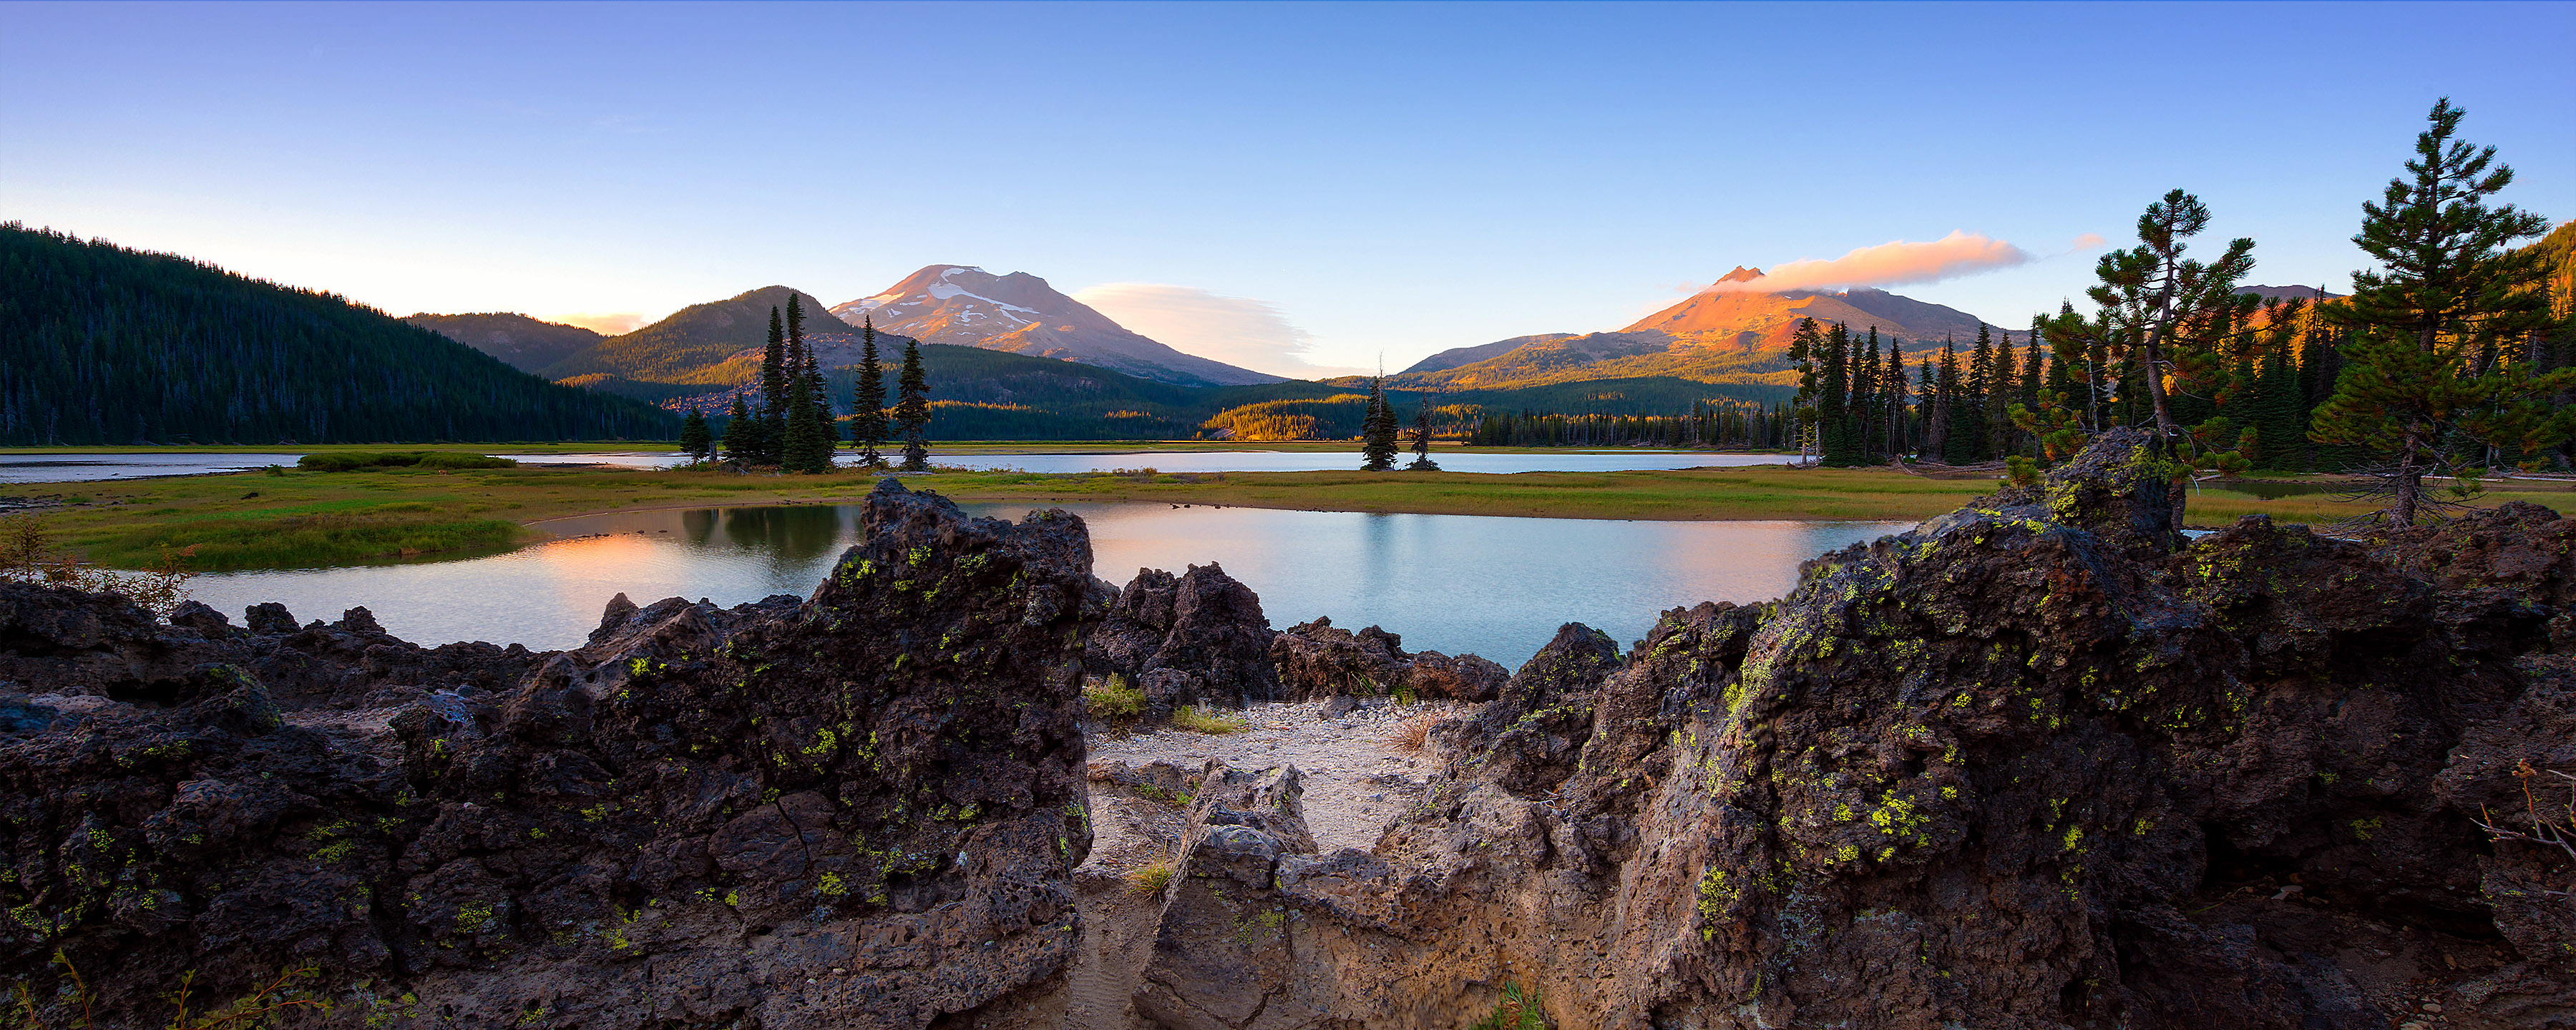 Sparks Lake Bend Oregon Gregory Chong Photography